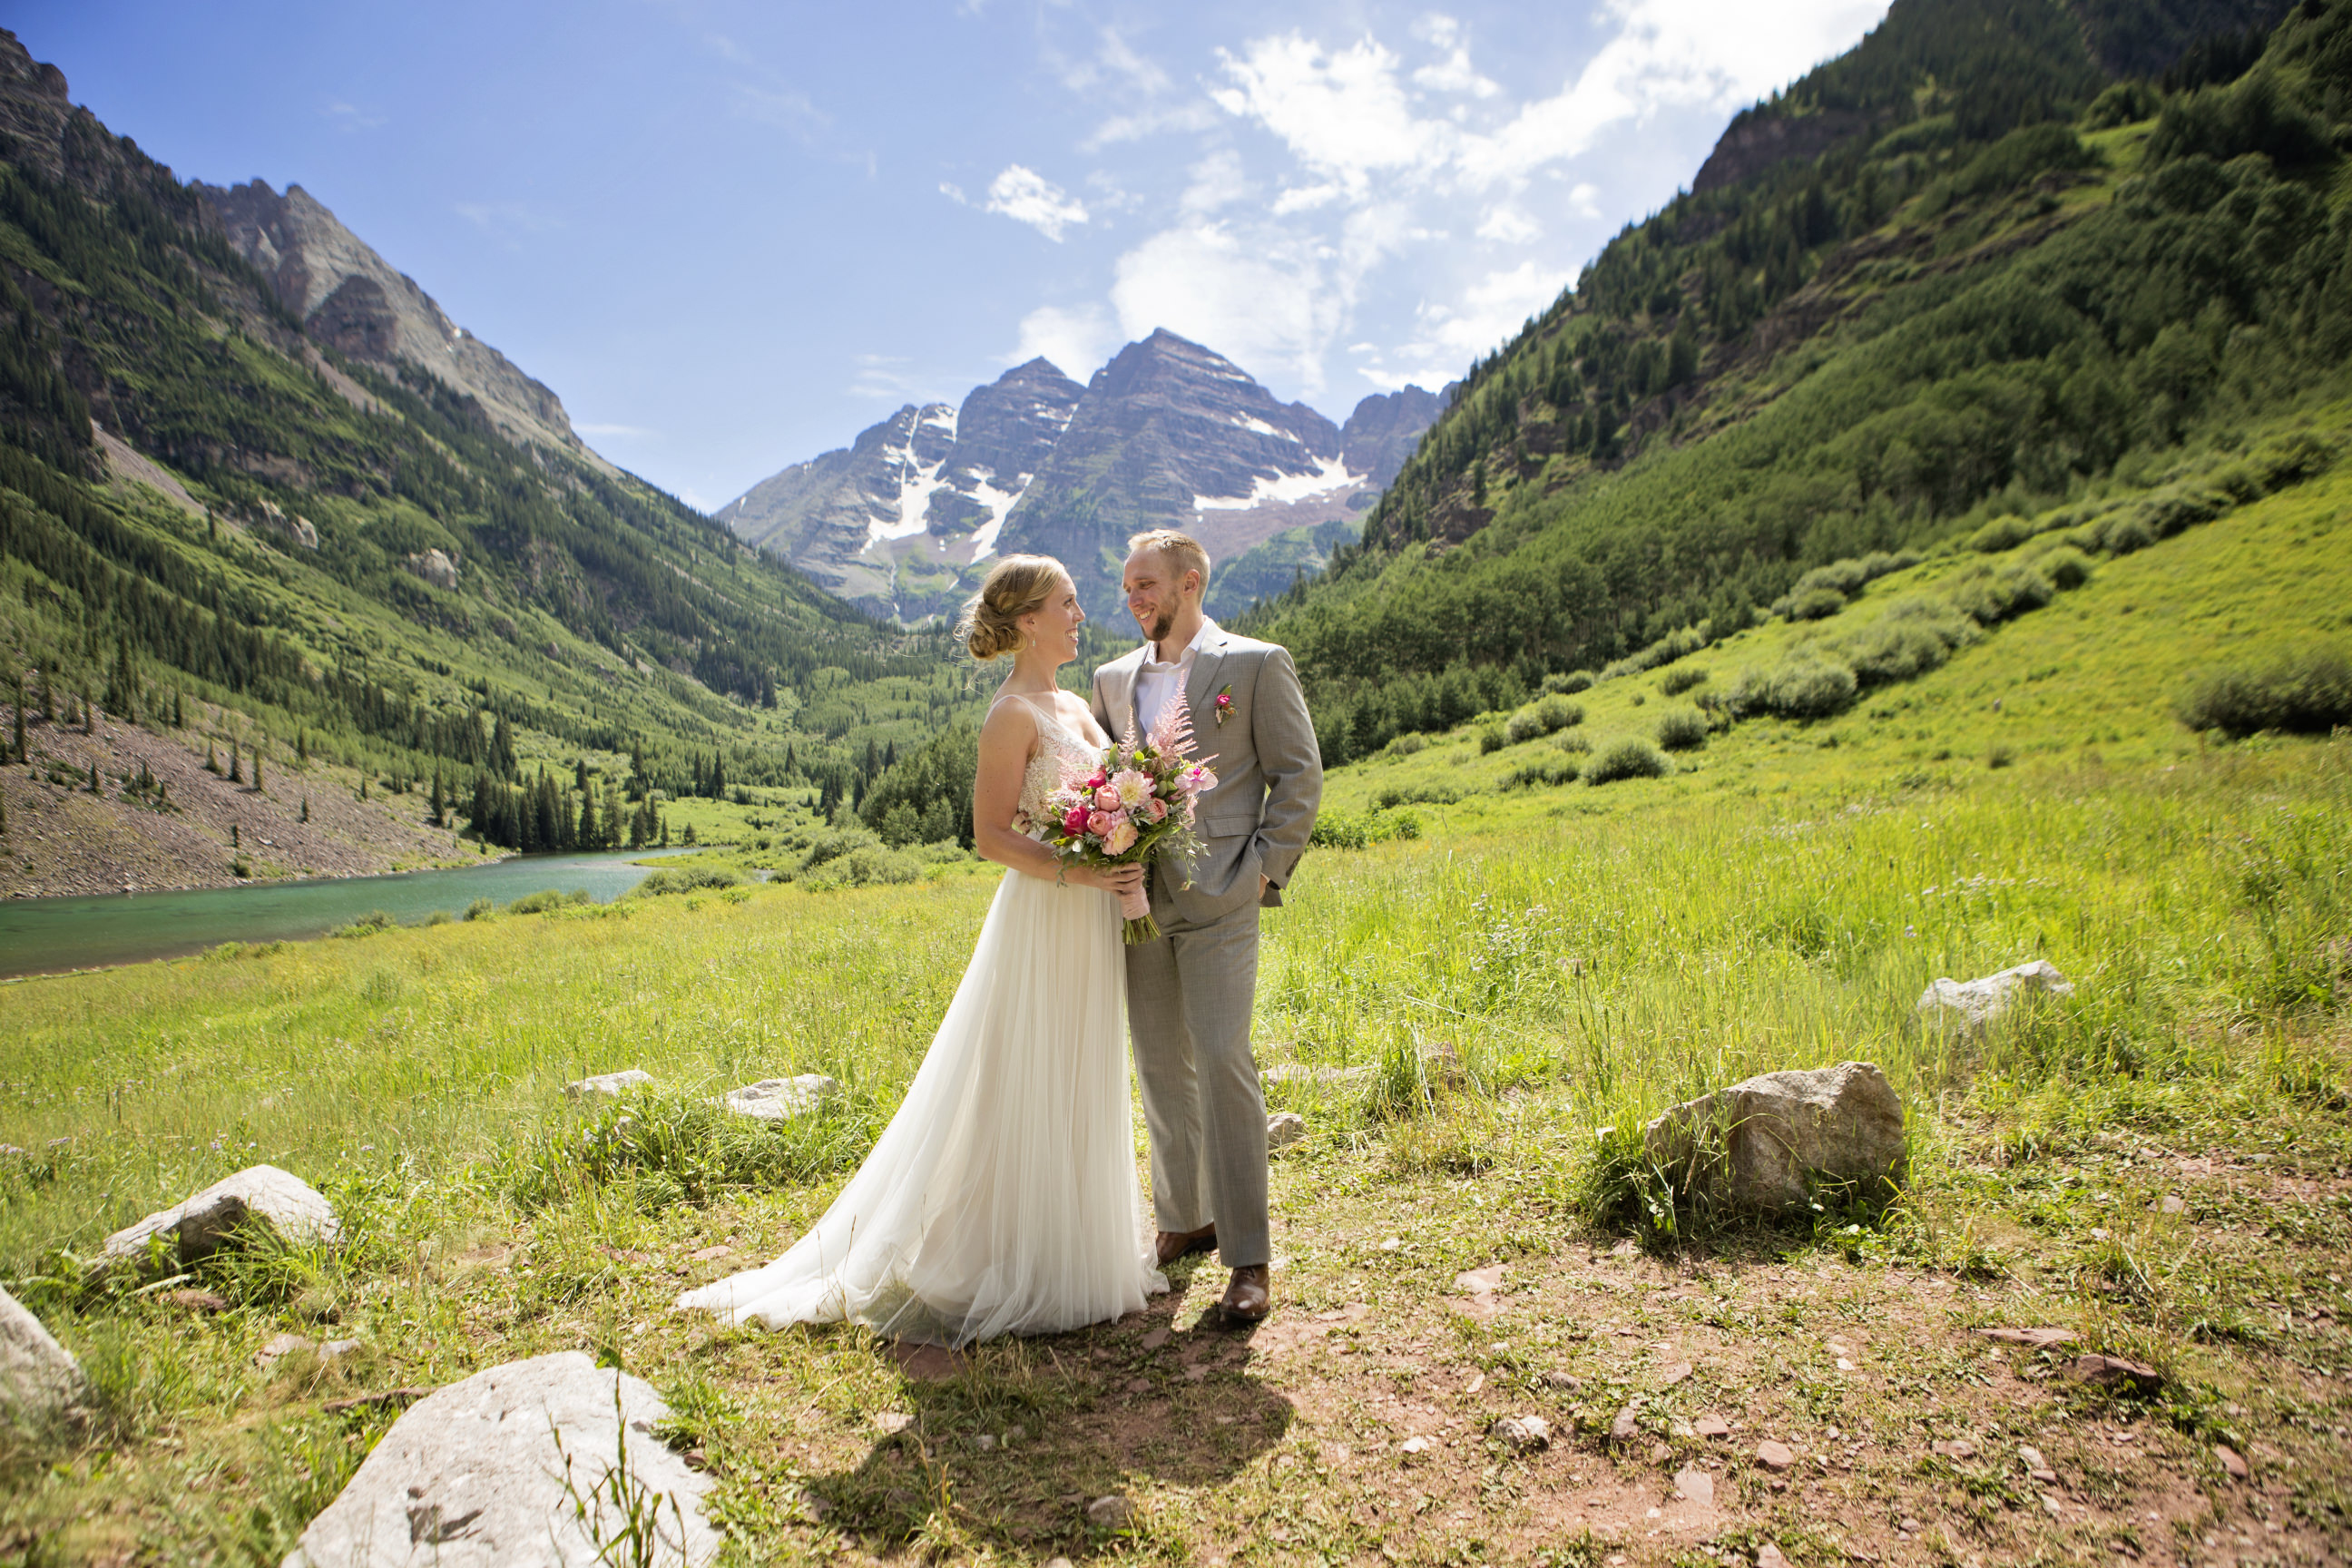 Wedding at Maroon Bells in Aspen Colorado | Windfirm Photography